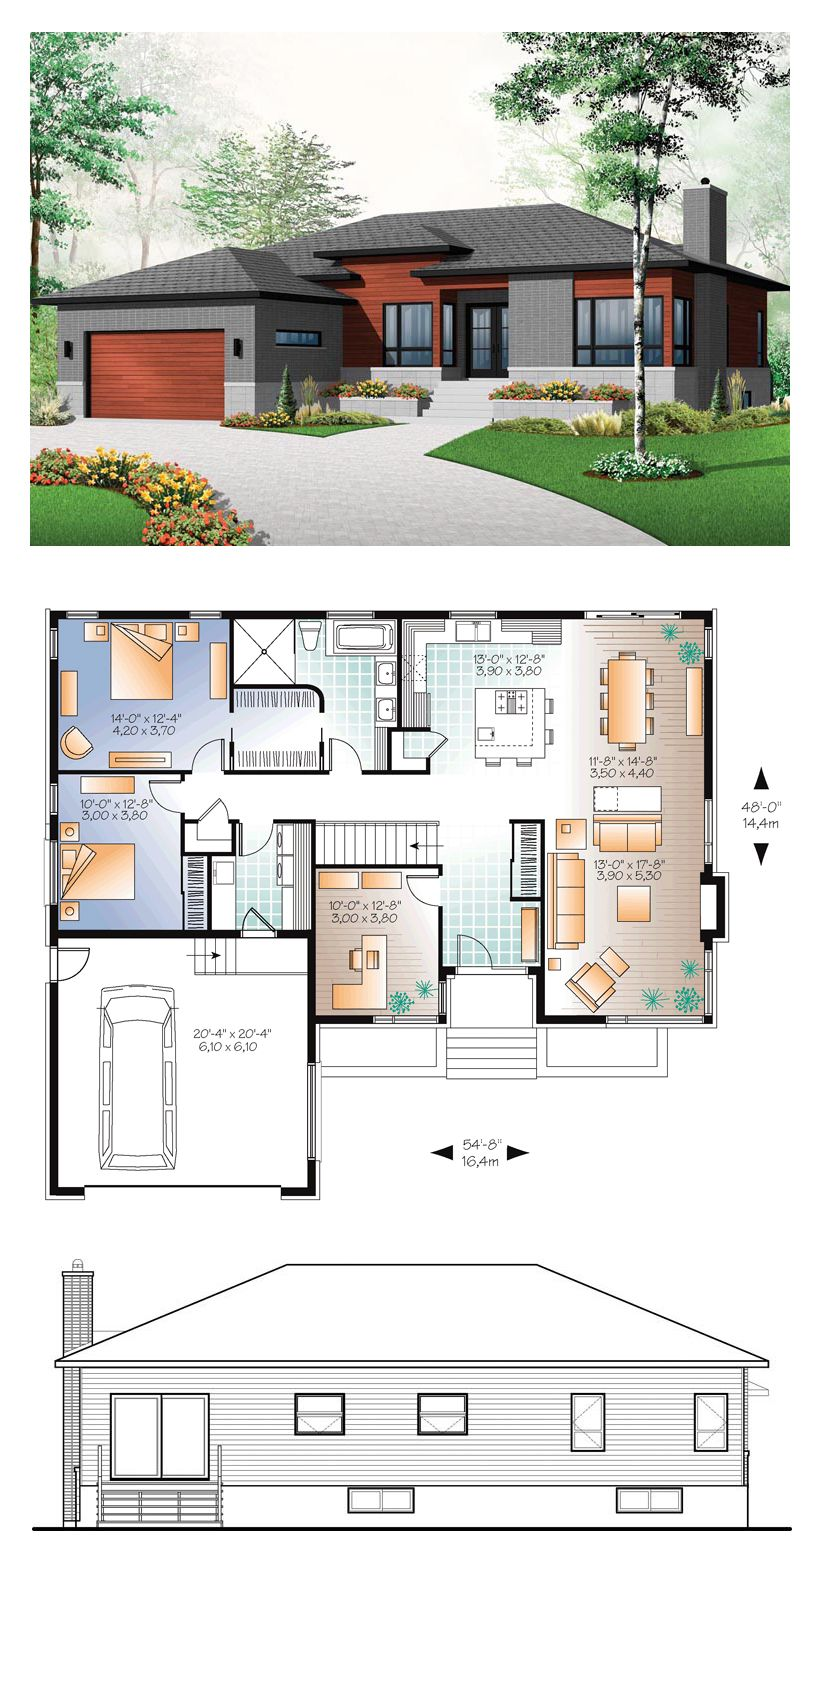 1000+ images about arquitectura on Pinterest Modern house plans ... size: 820 x 1698 post ID: 0 File size: 0 B